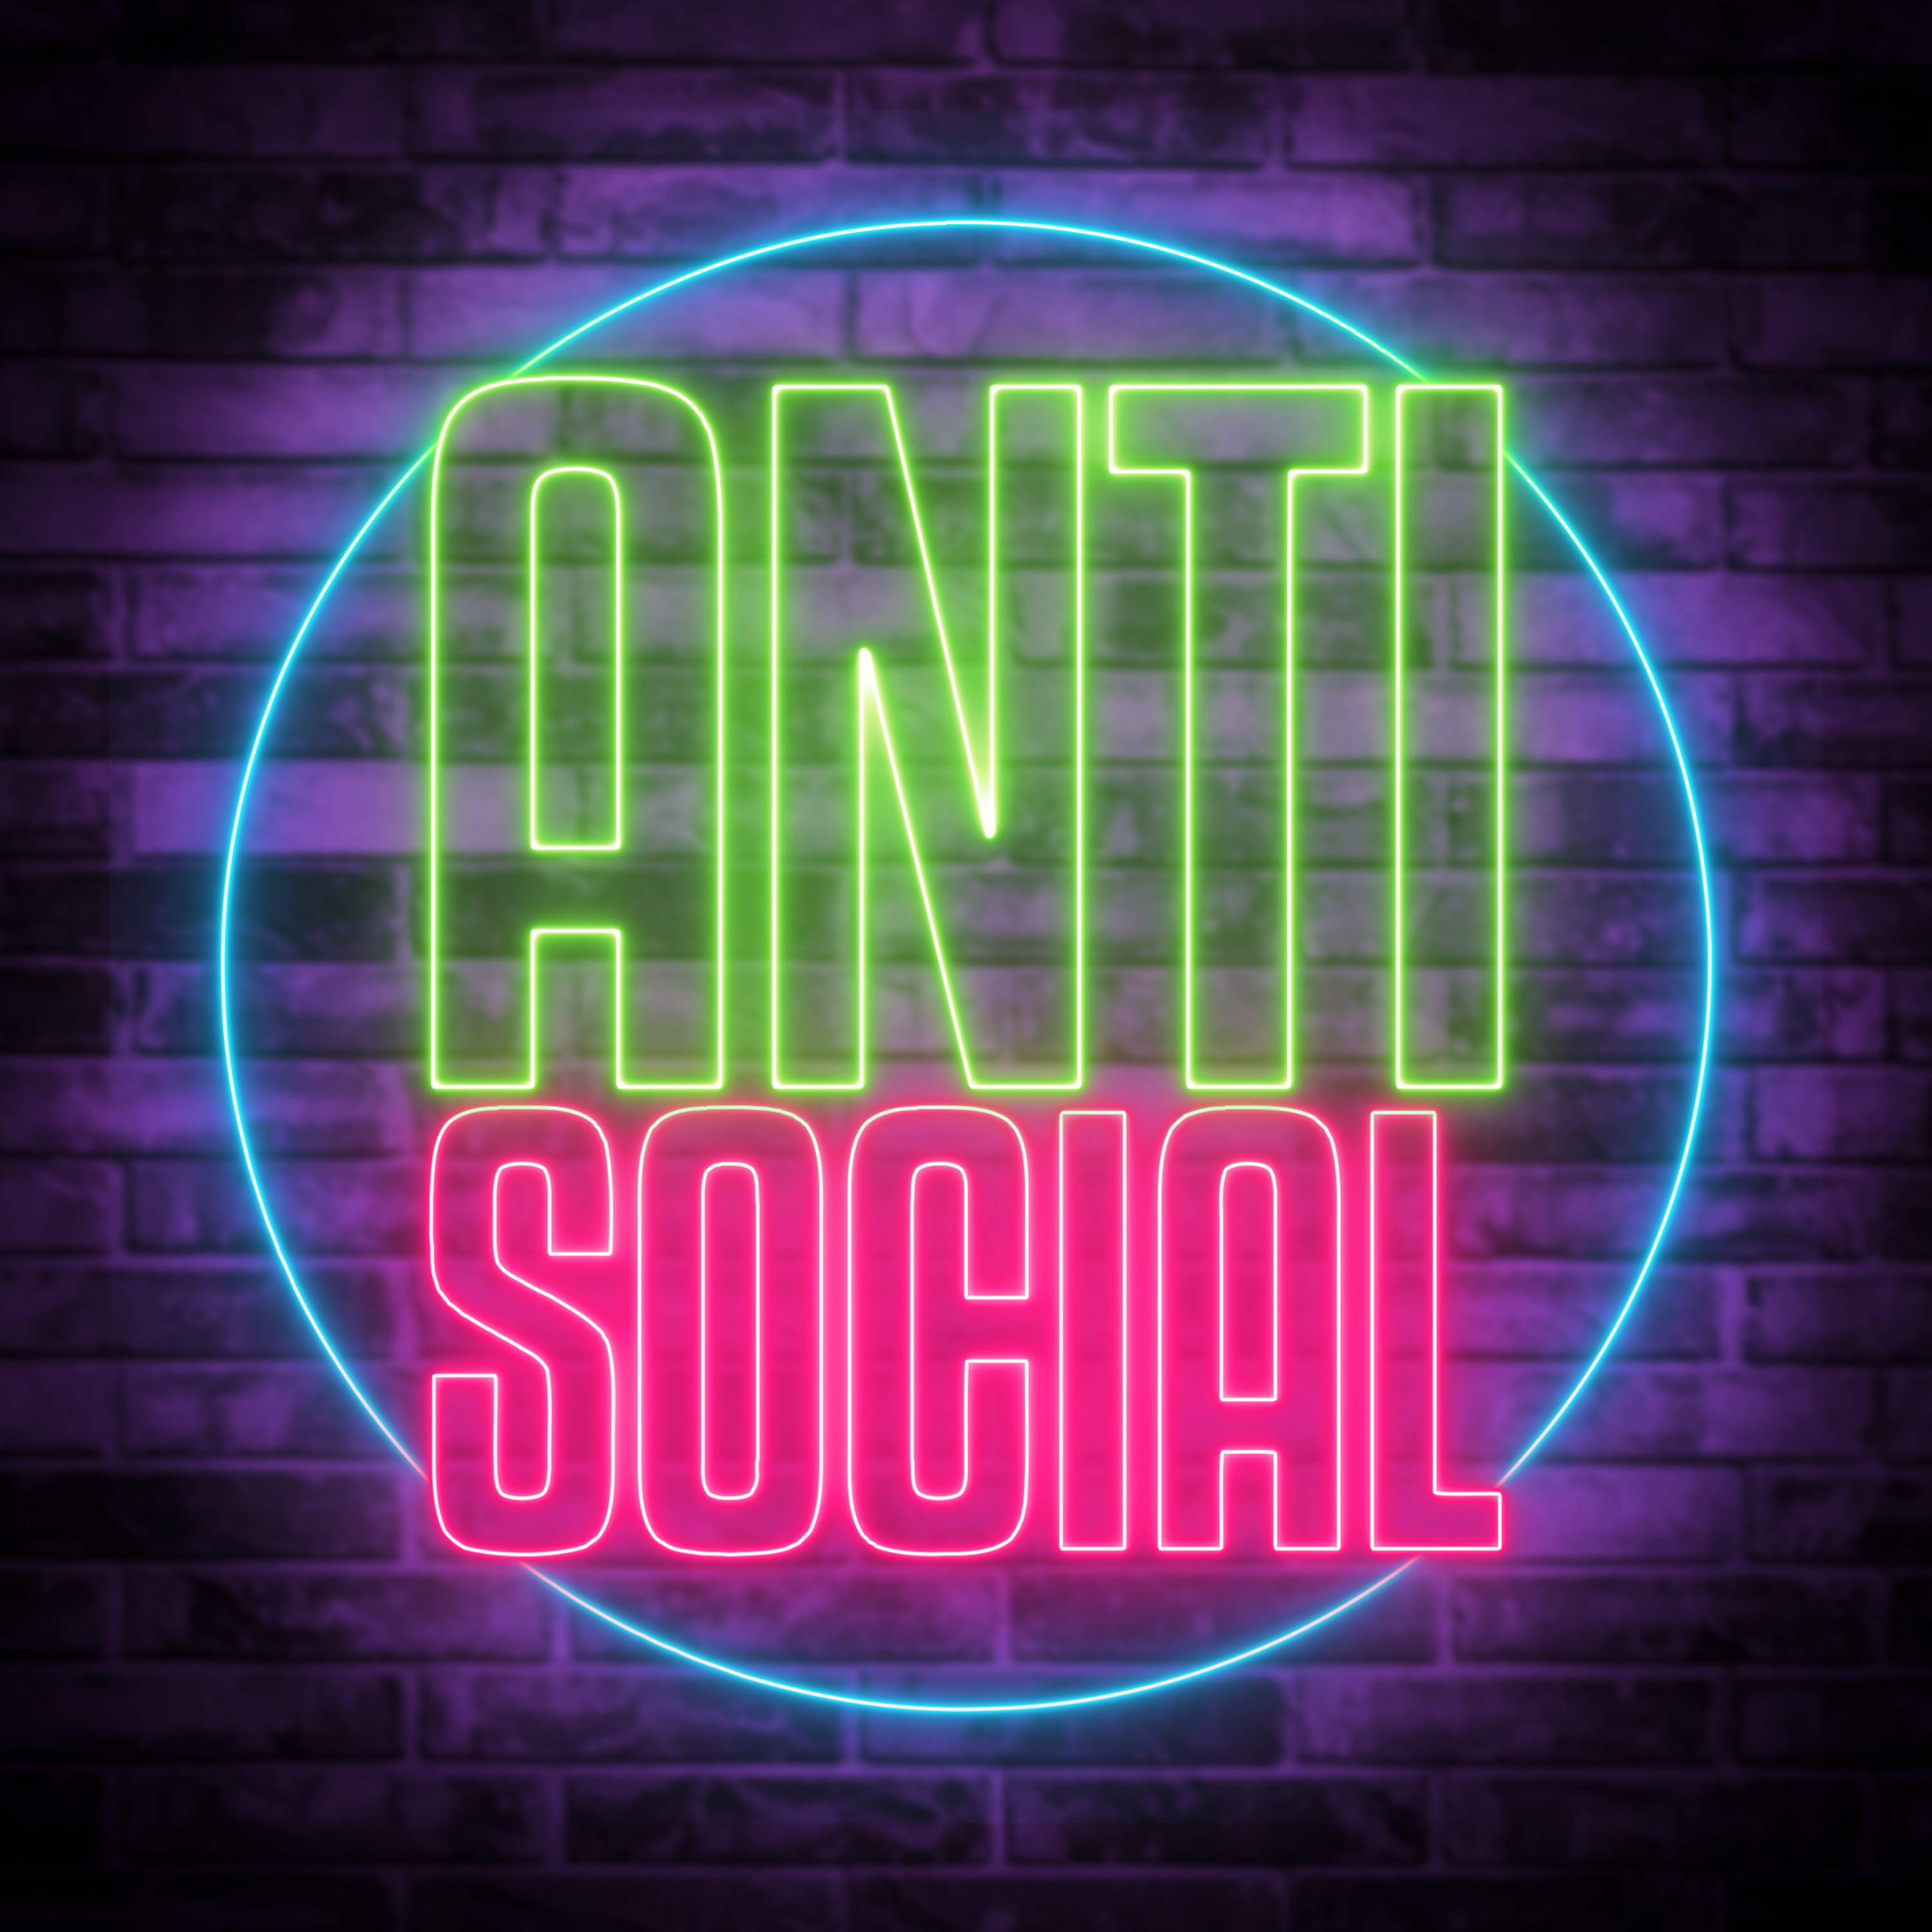 Antisocial - Episode #1 - Working with The Sidemen, XO, Wembley Cup, Coming out and more...